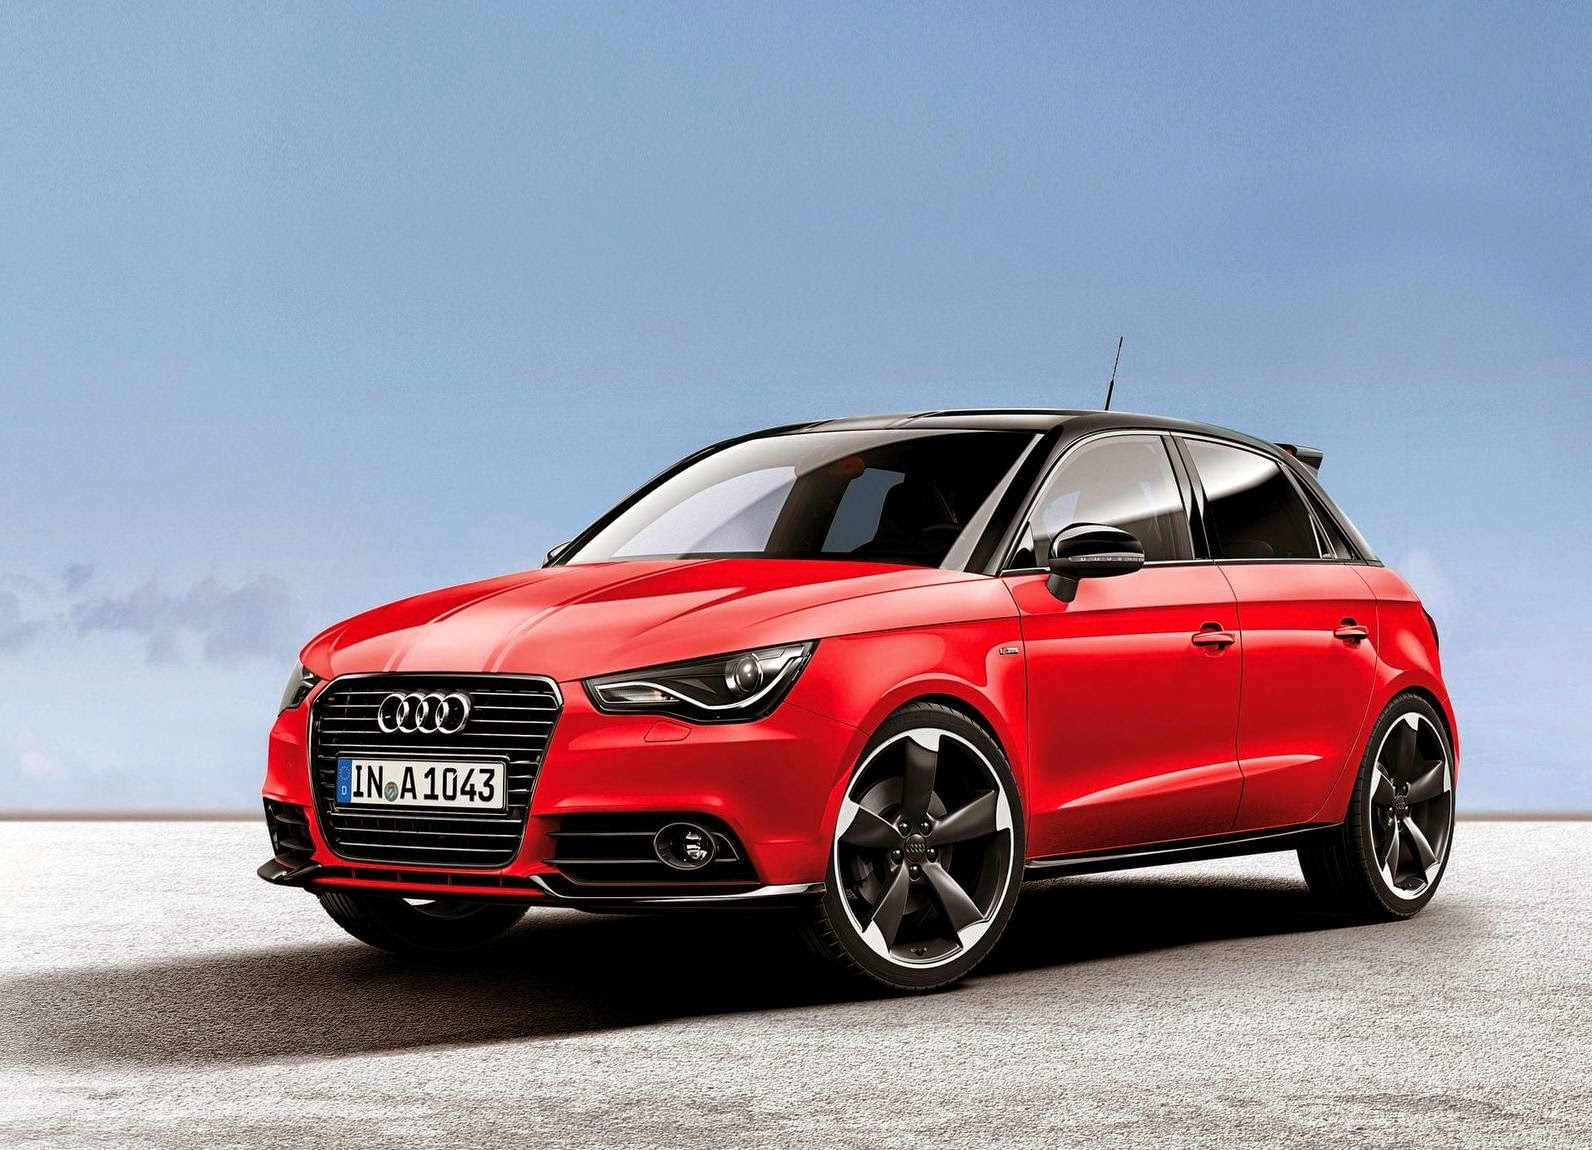 Audi A1 Amplified 2012 Full-screen Wallpaper